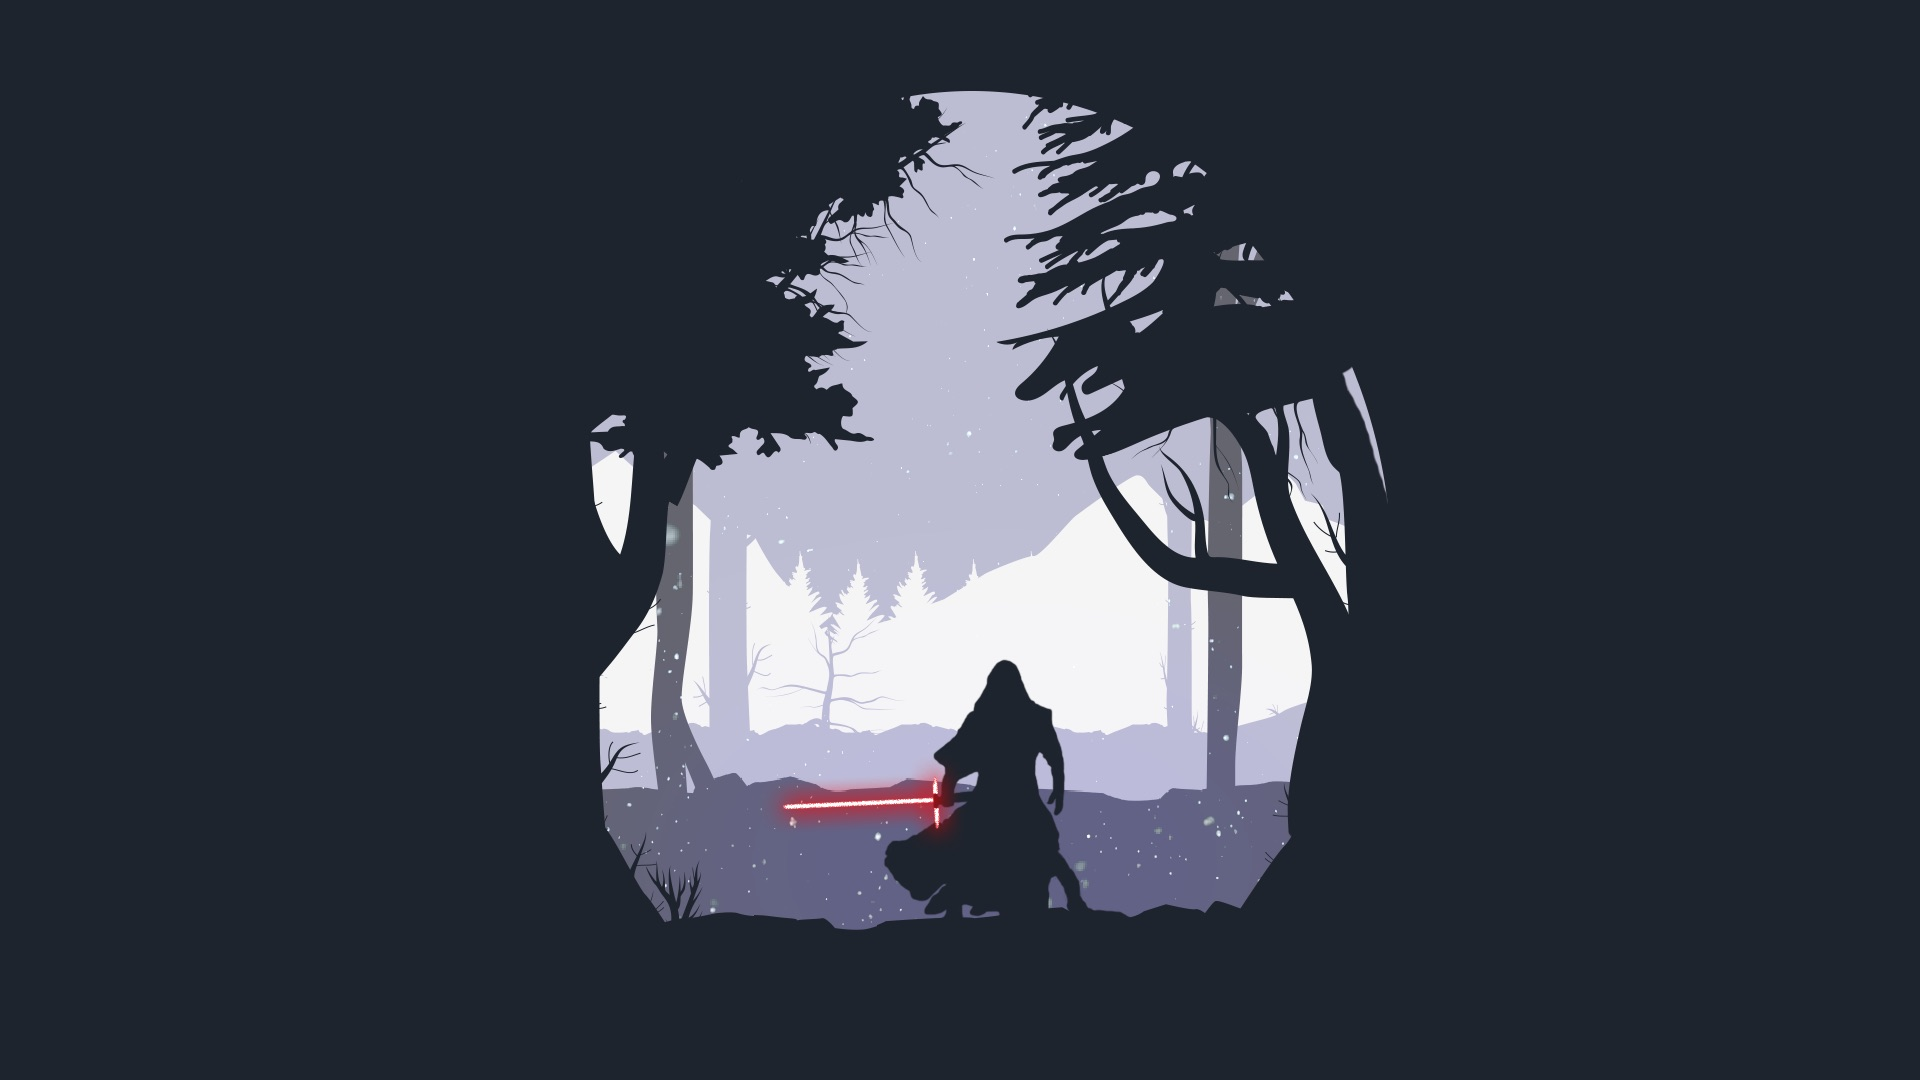 Best Wallpapers to Celebrate Star Wars Day in 2019 iMore